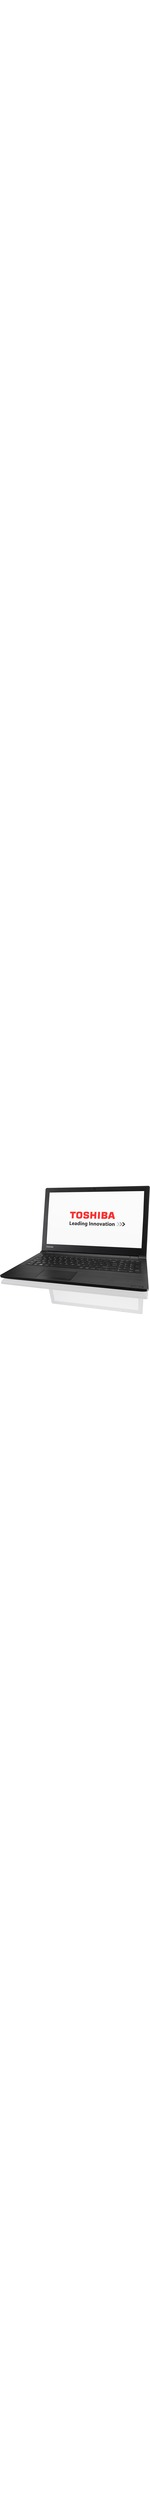 Toshiba Satellite Pro R50-C-17C 39.6 cm 15.6And#34; LCD Notebook - Intel Core i5 6th Gen